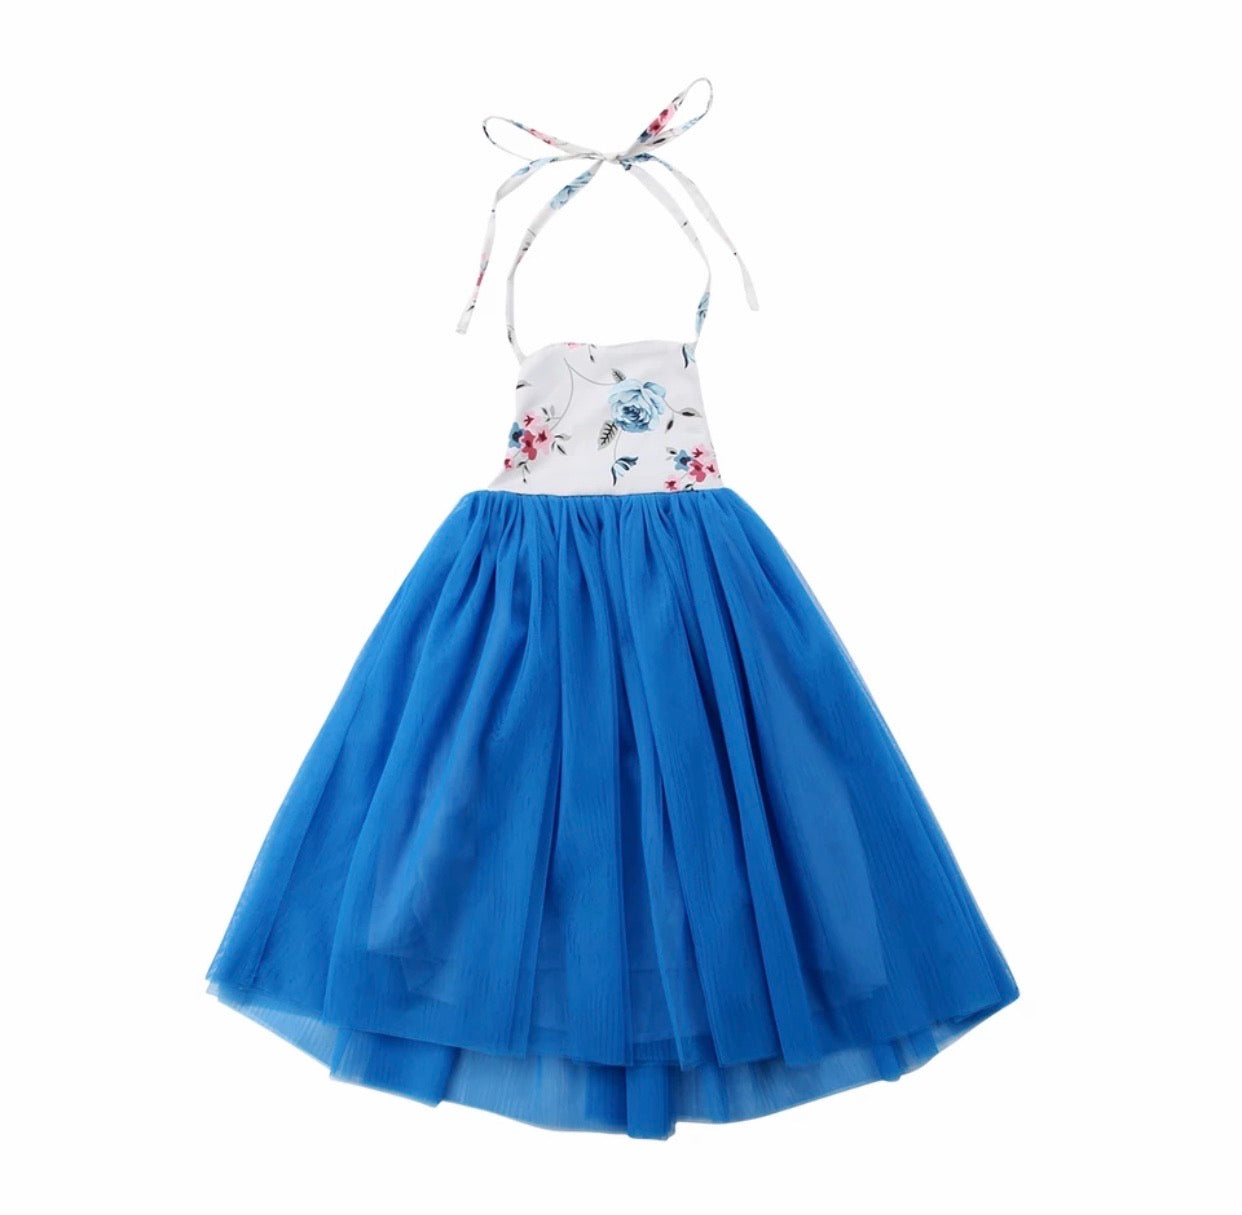 Ebbony-Halter-Kids-Dress